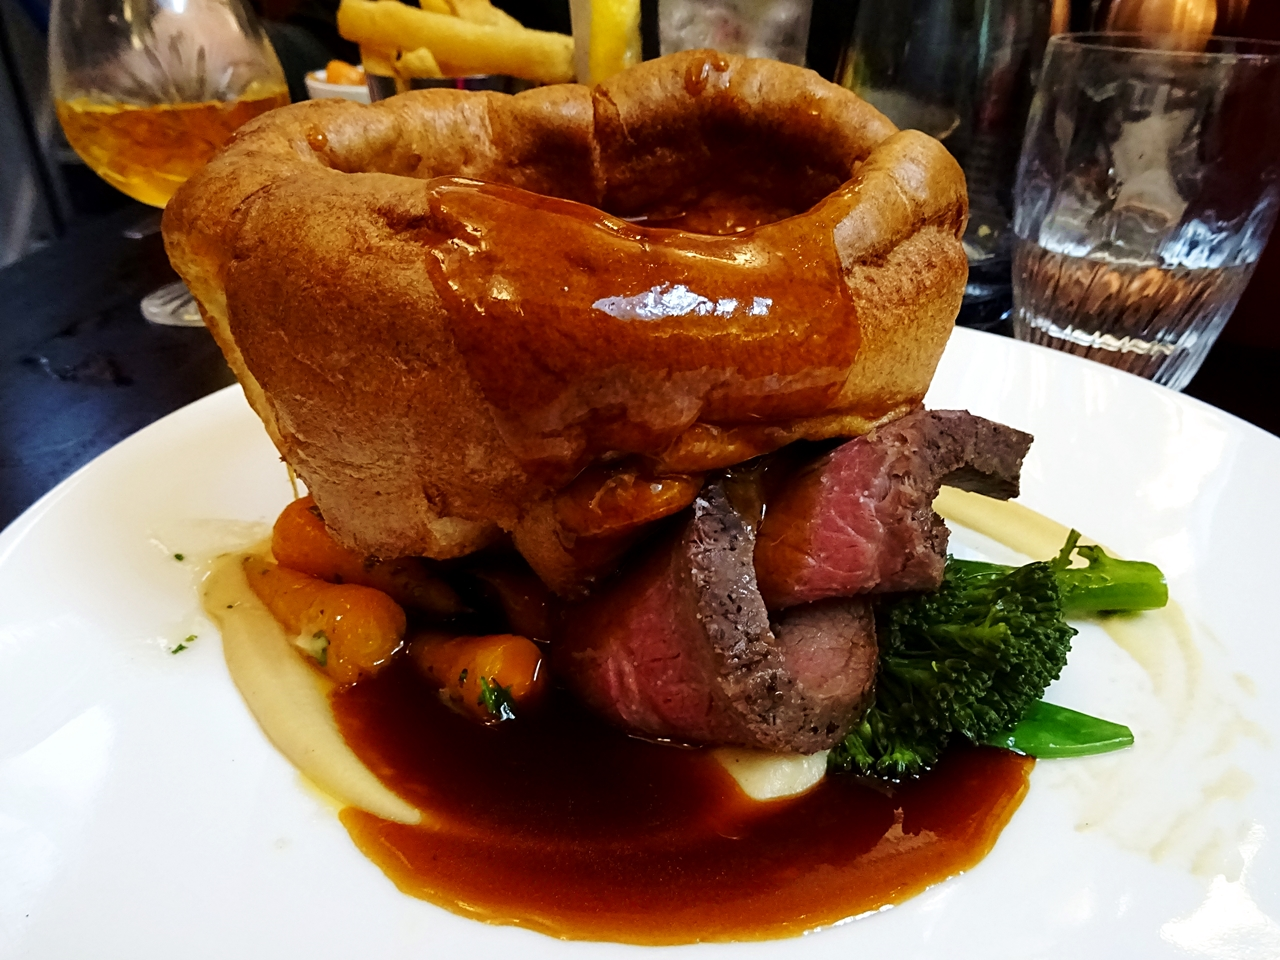 courthouse knutsford cheshire sunday sirloin lunch main